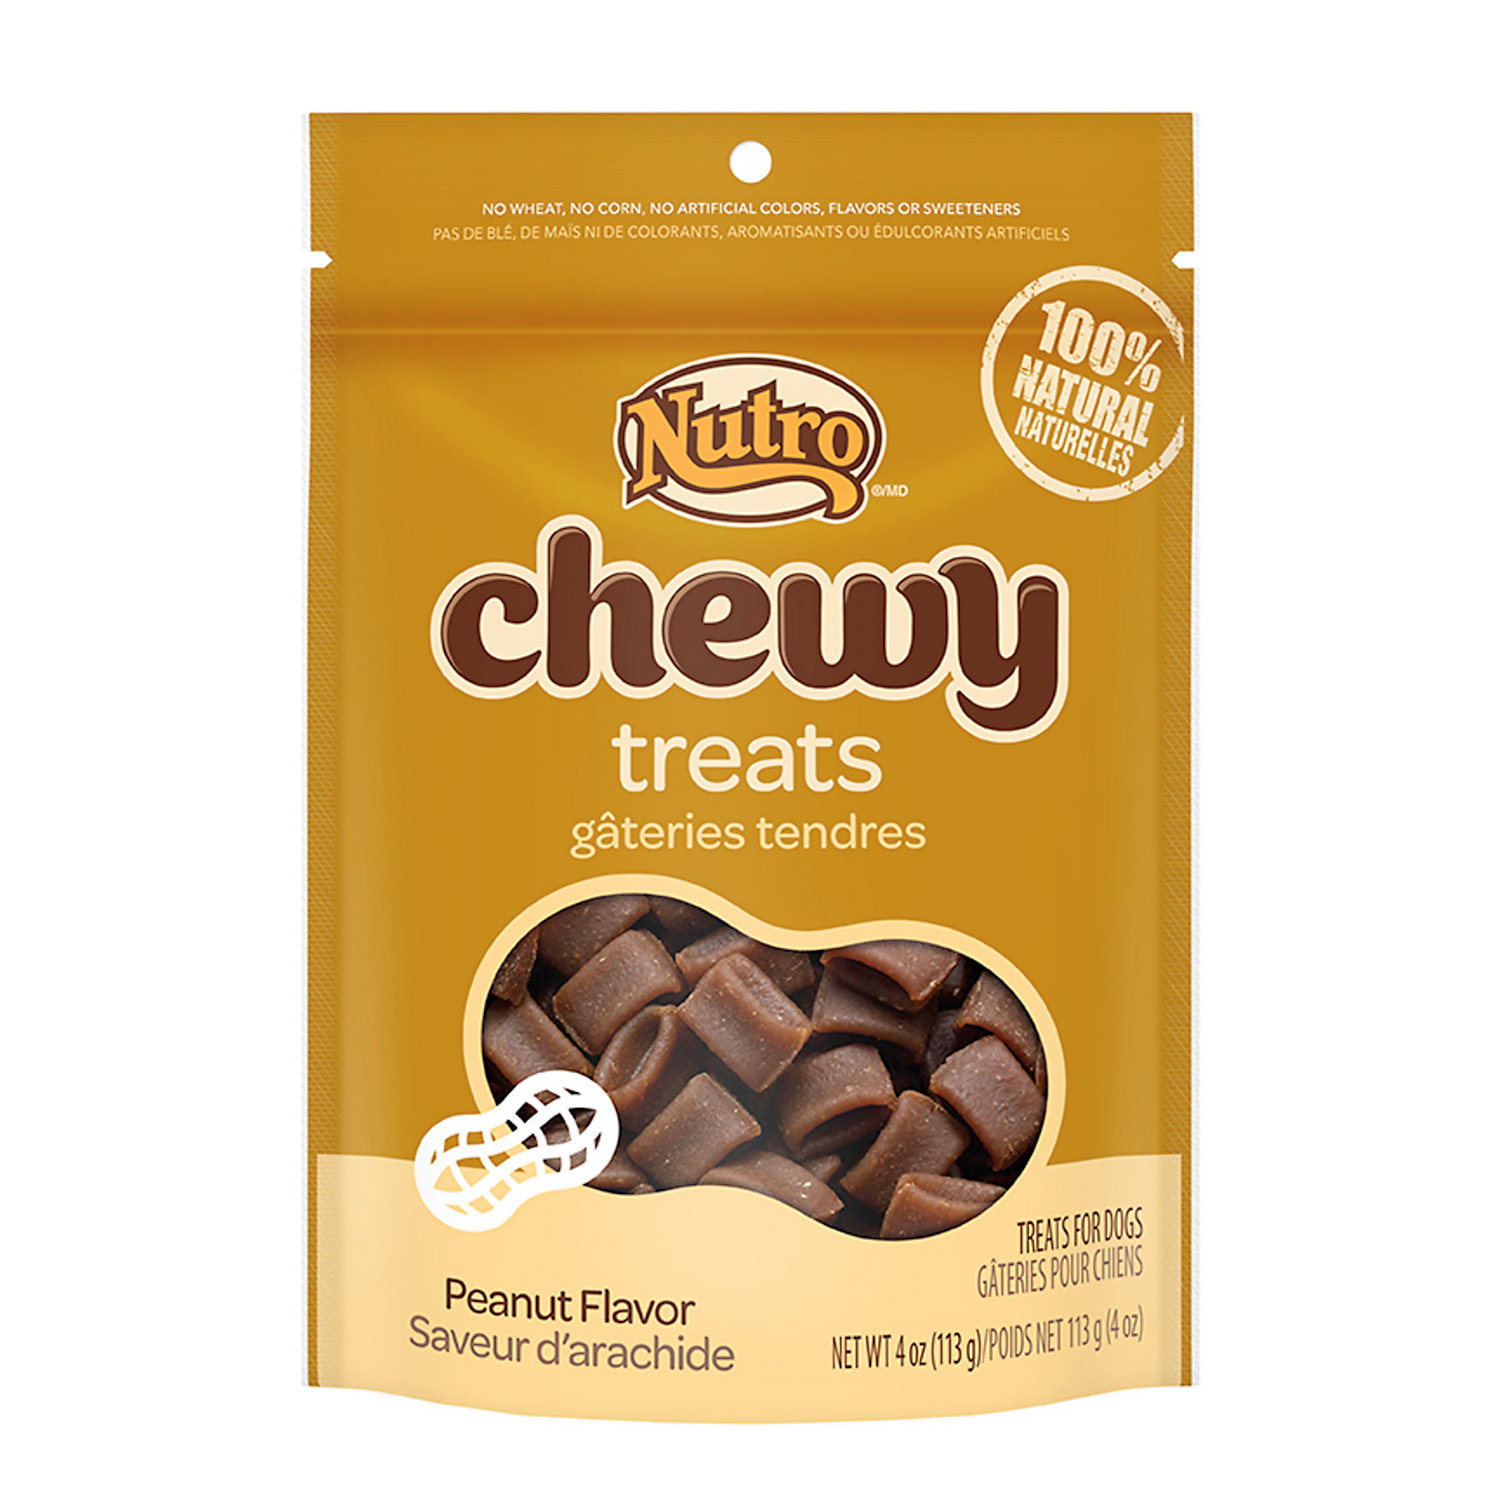 Nutro Dog Treats Petco